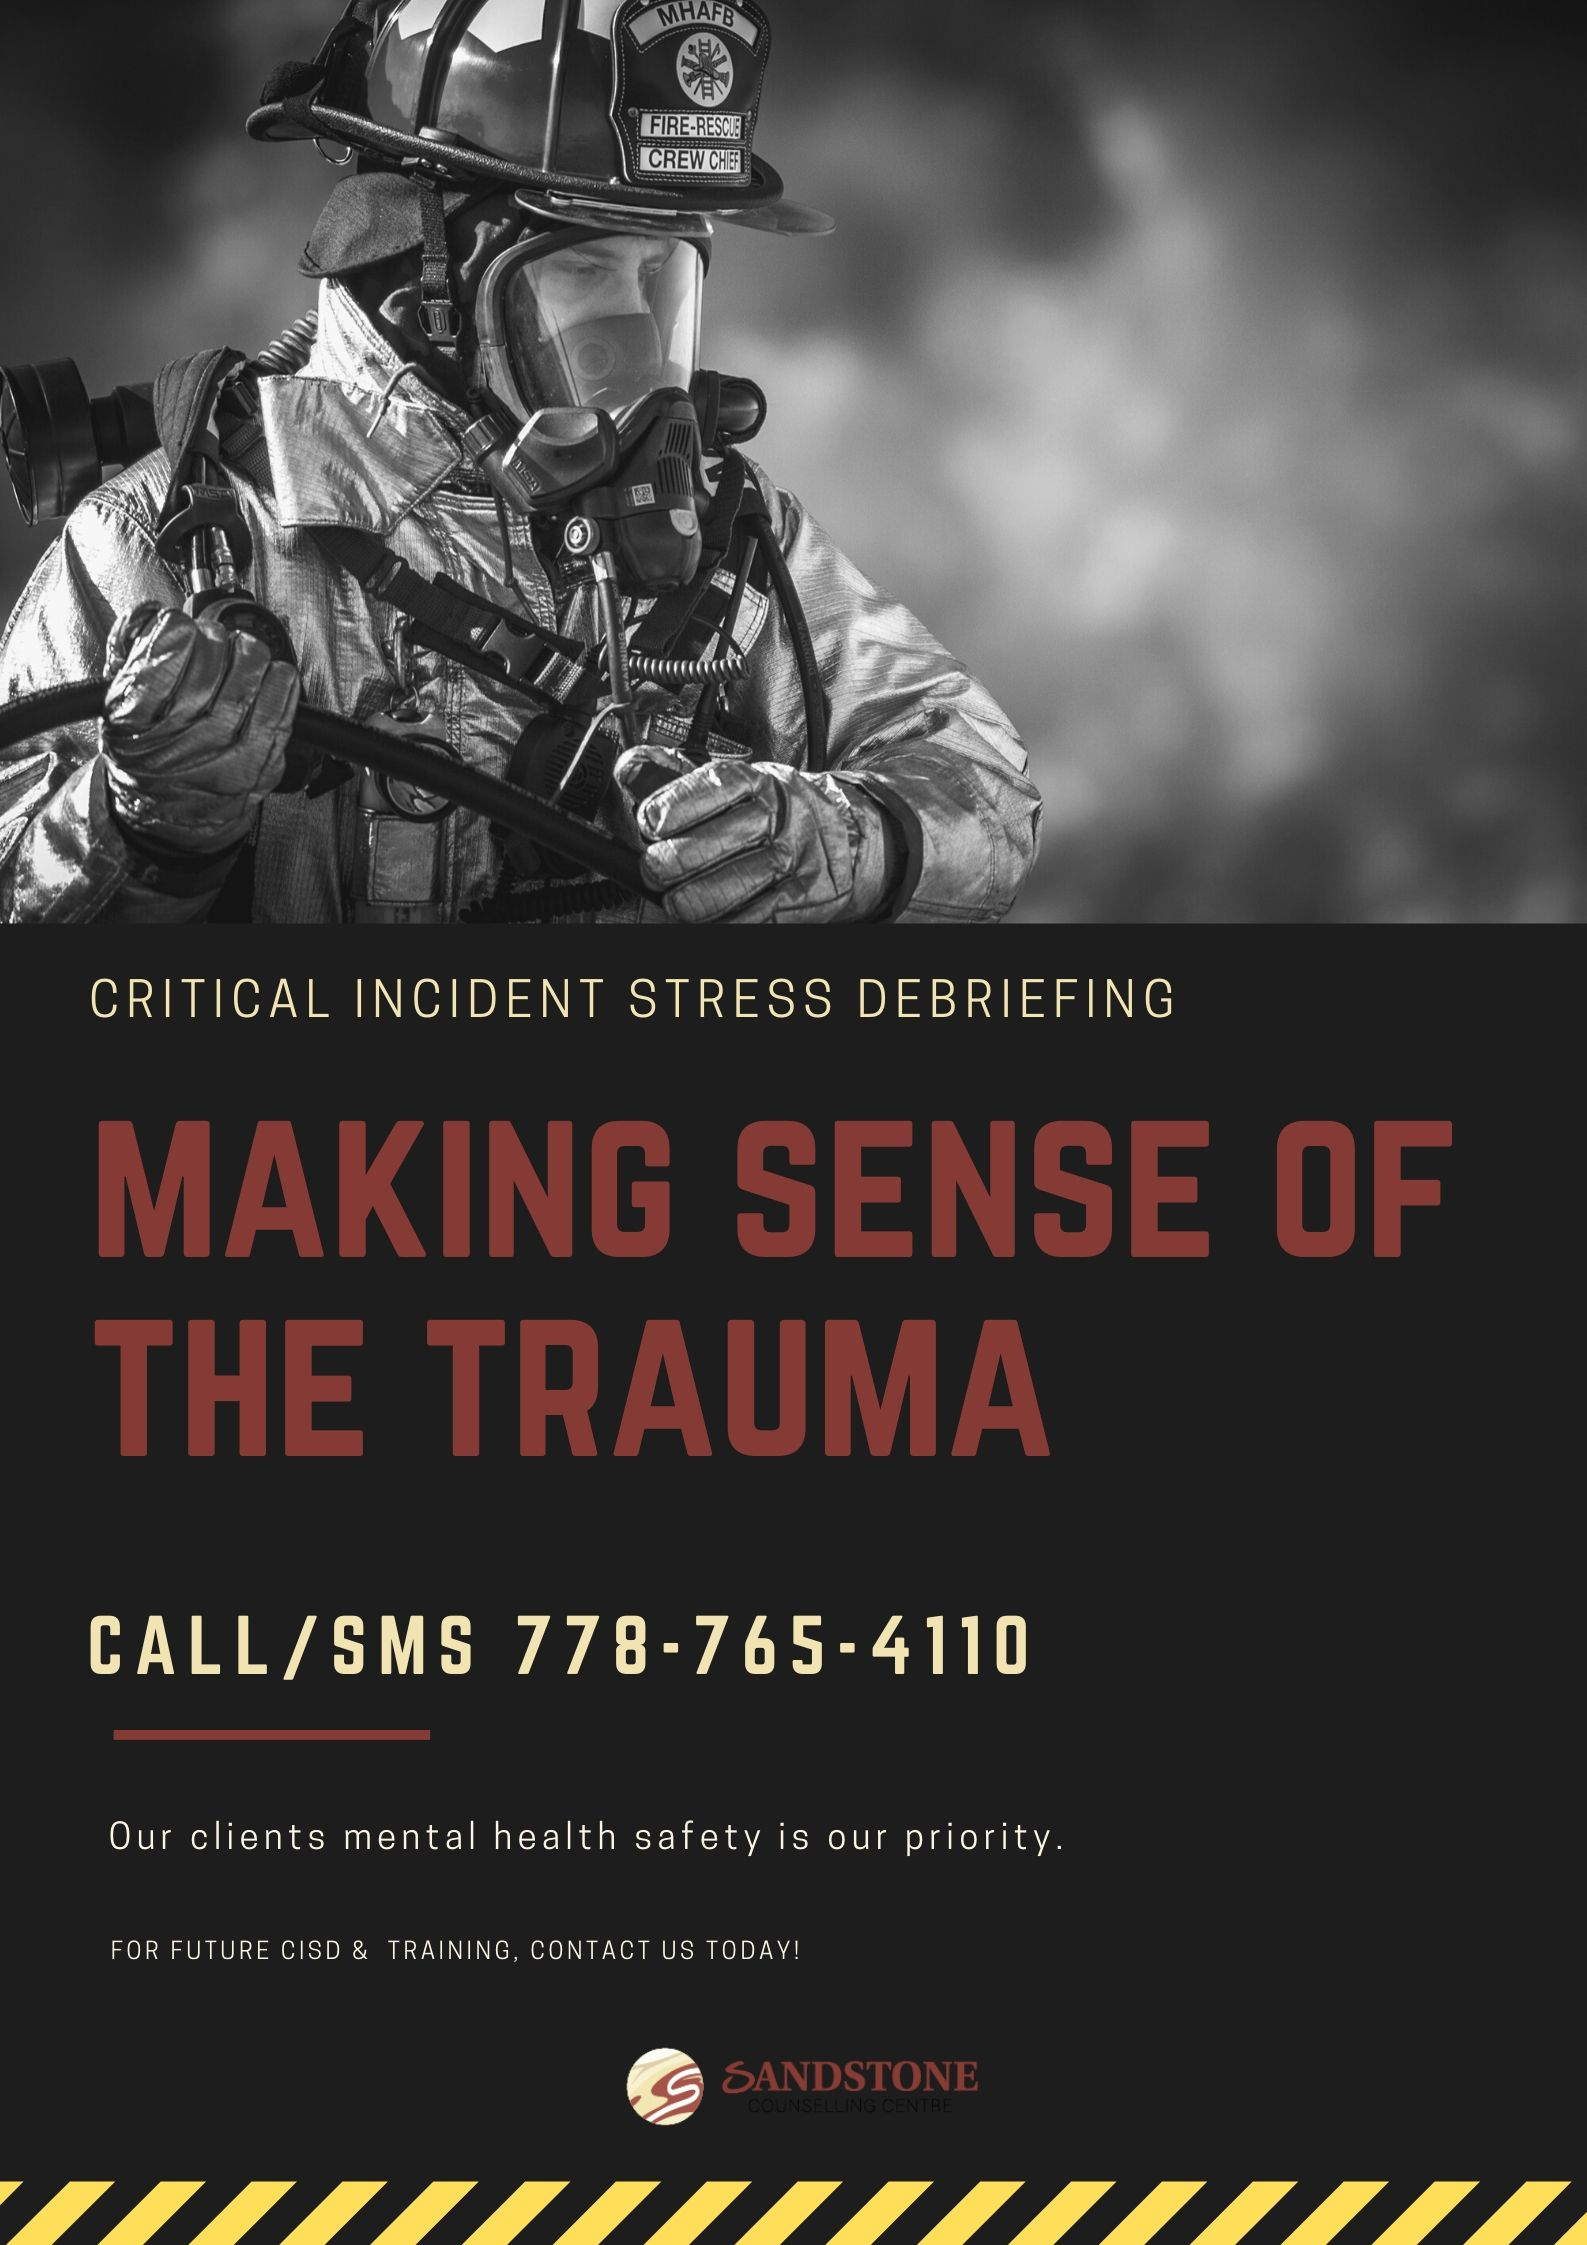 CSID CISM Trauma Crisis Counselling